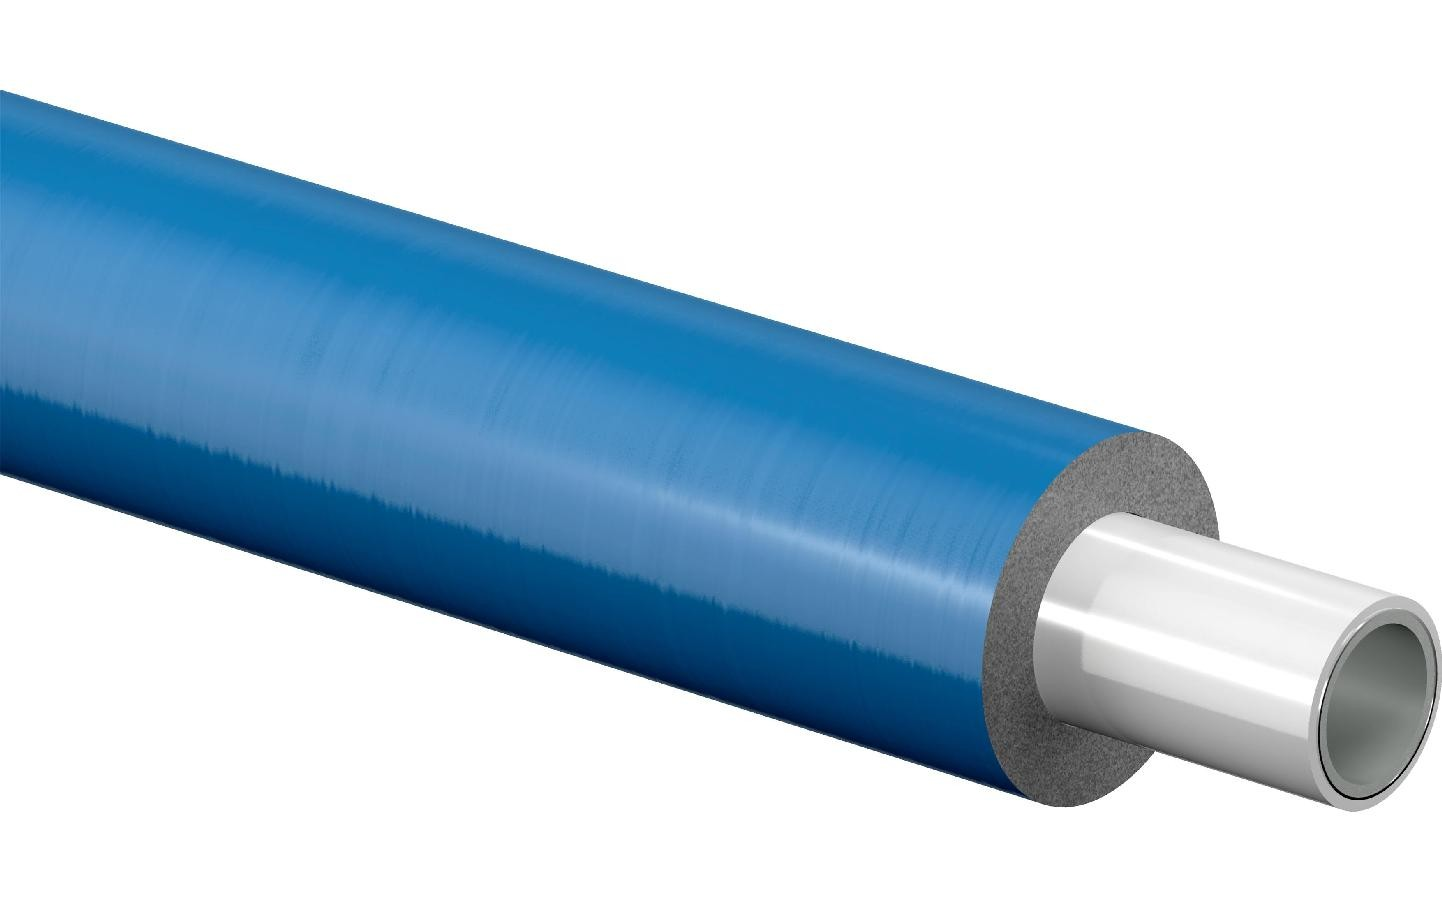 Image 1 of Uponor  1013625 16x2mm MLC Pipe Pre-insulated S9 (9mm Insulation)